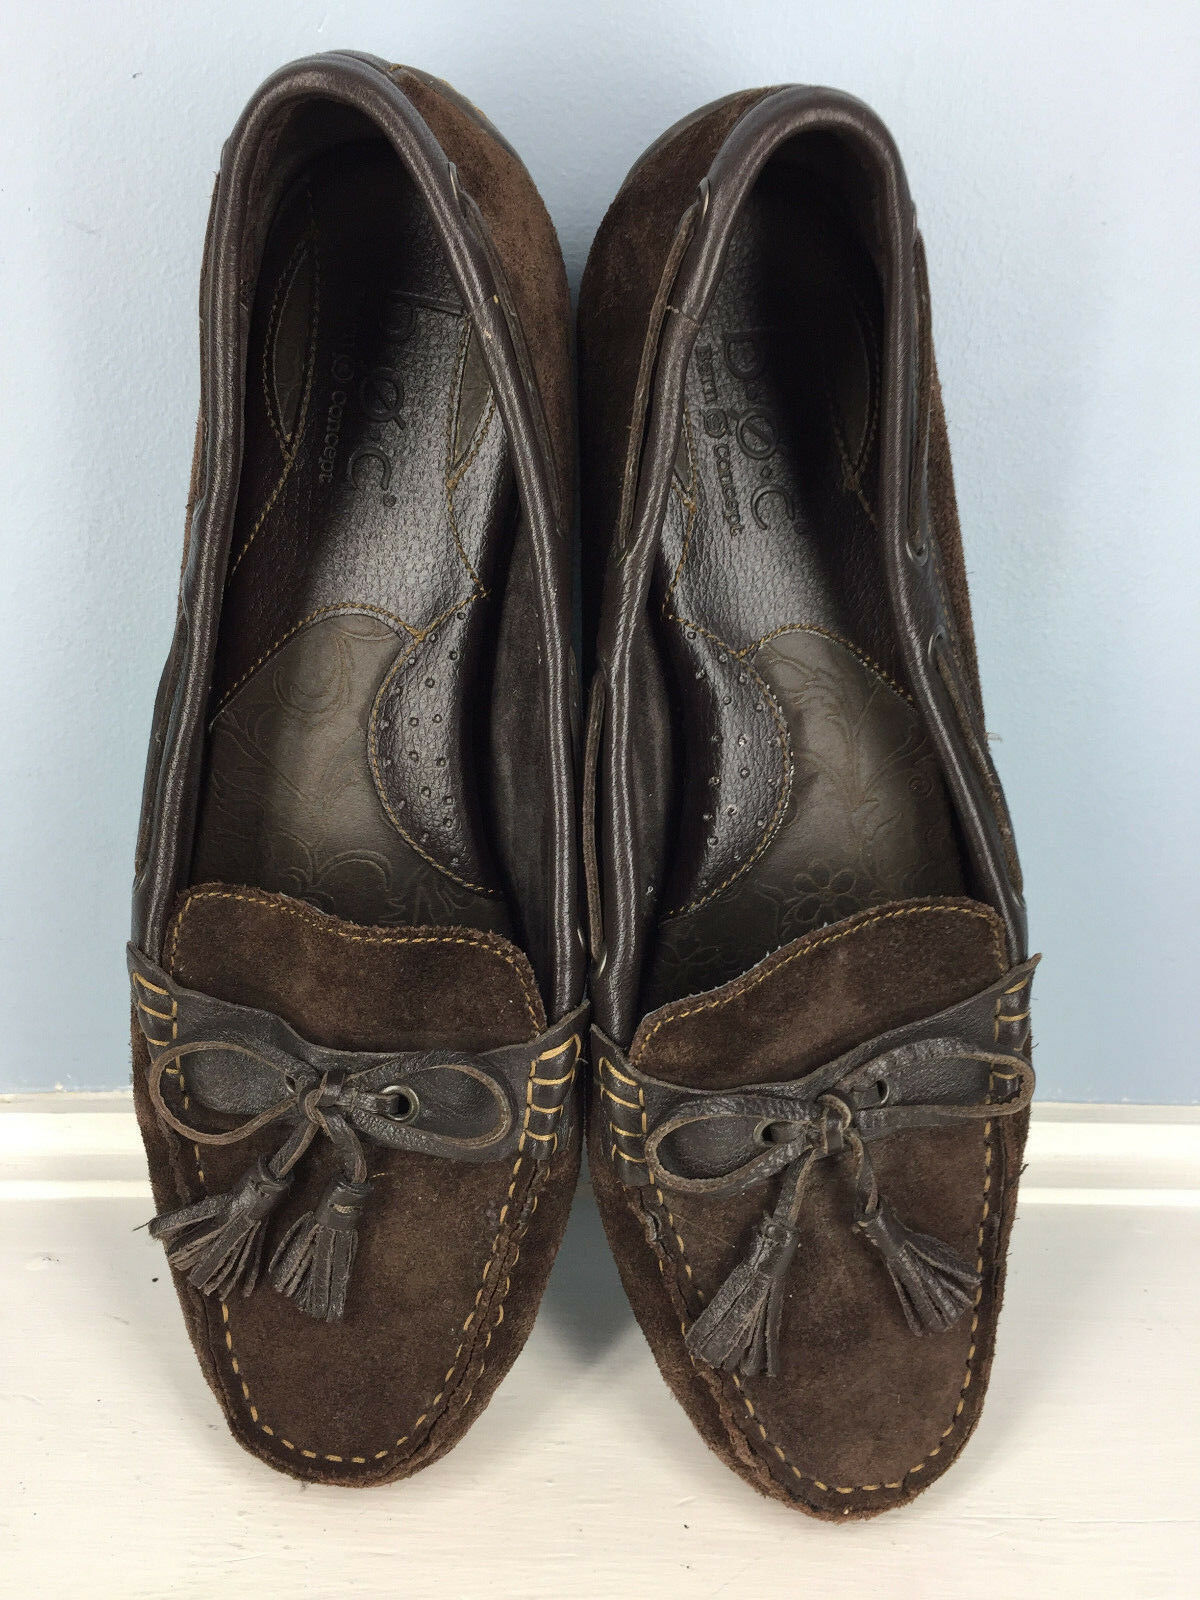 b.o.c. Born Driving Moc Loafer Excellent brown leather Career Casual 10